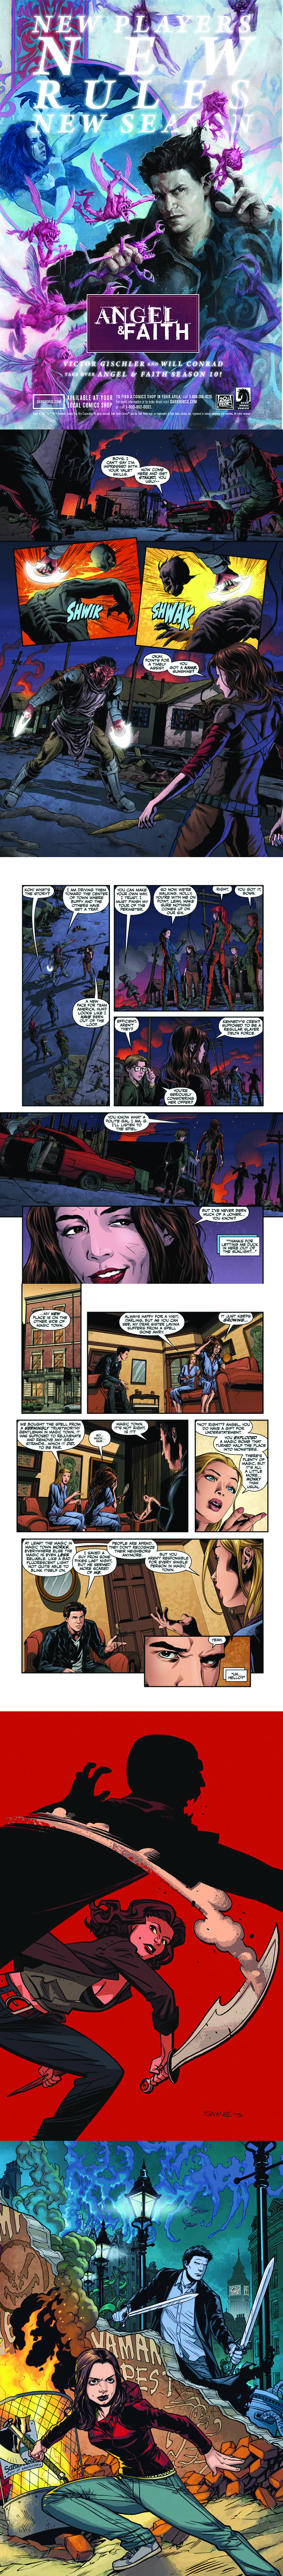 Preview from: Dark Horse Comics